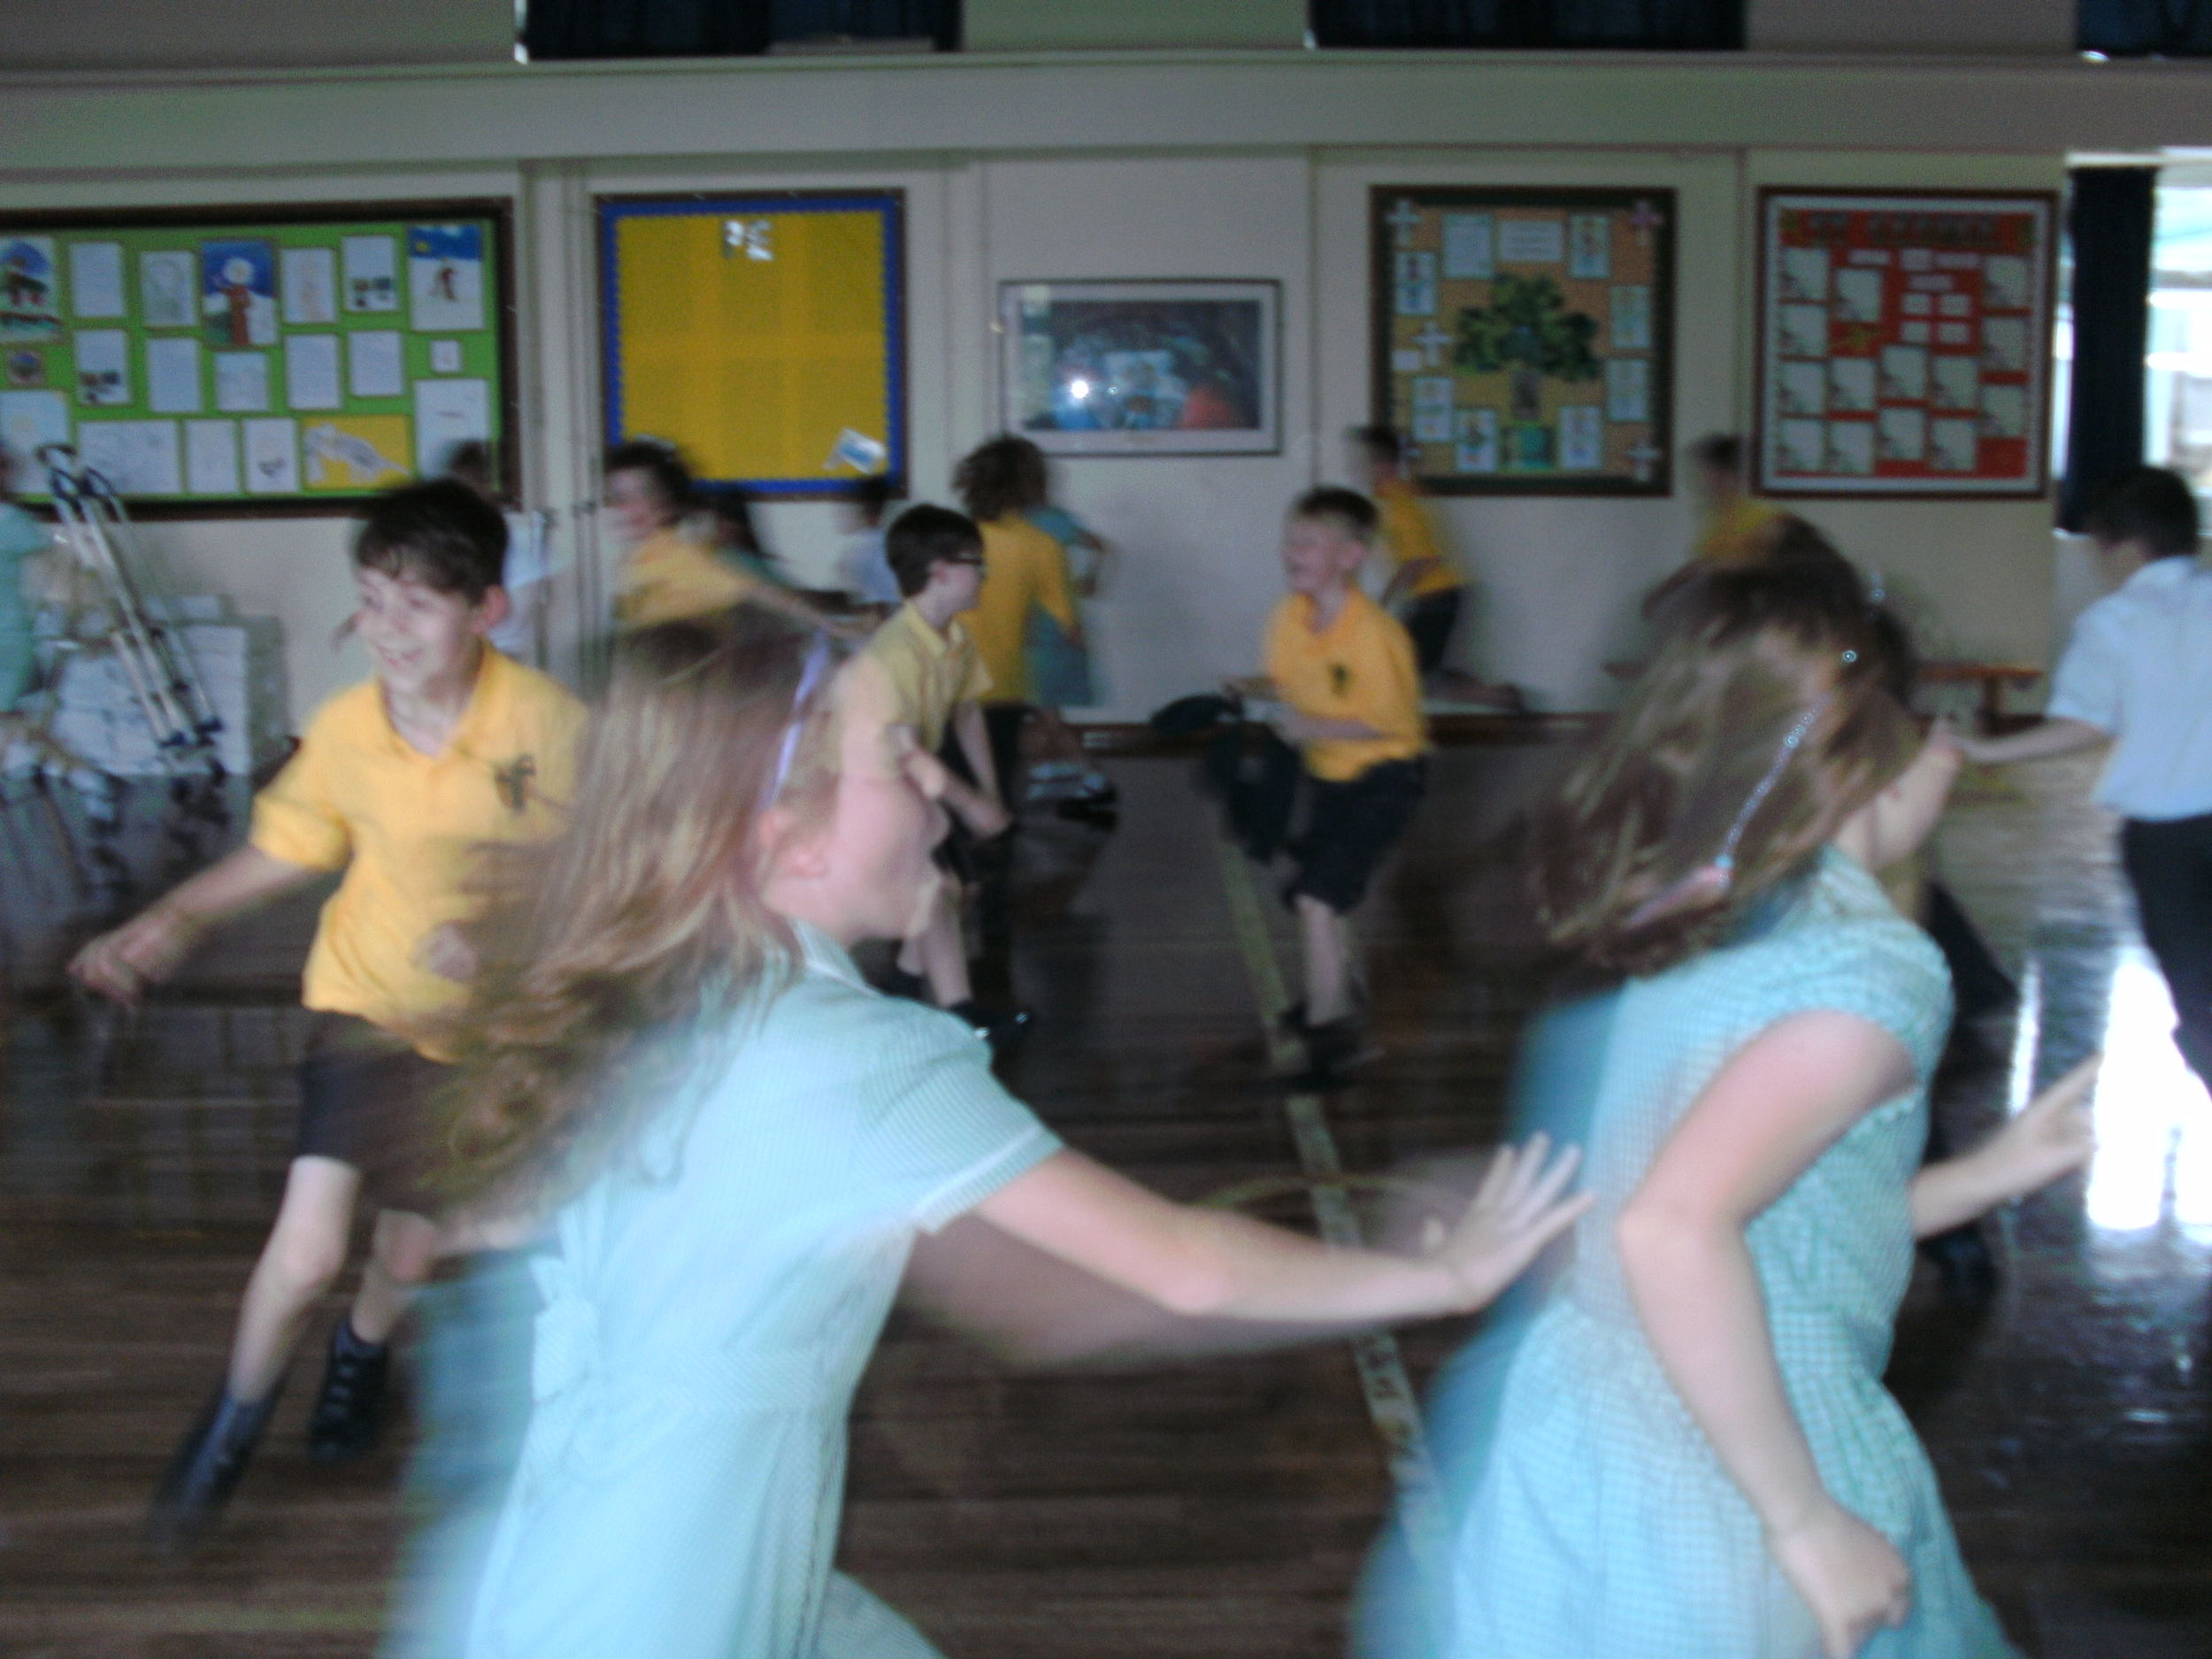 Pretending to be Gas particles was most fun. We could move quickly with lots of energy and fill the whole space !